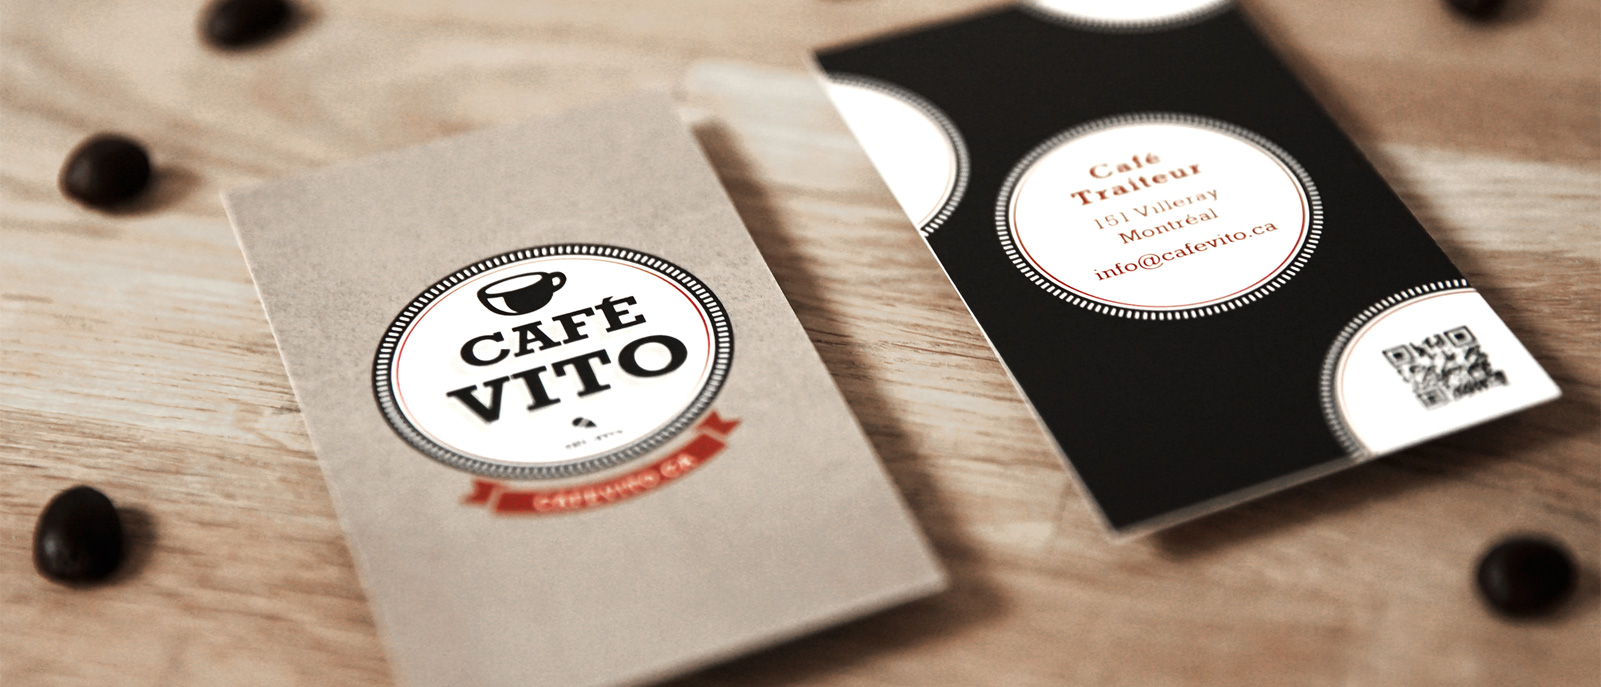 Cafe Vito business cards